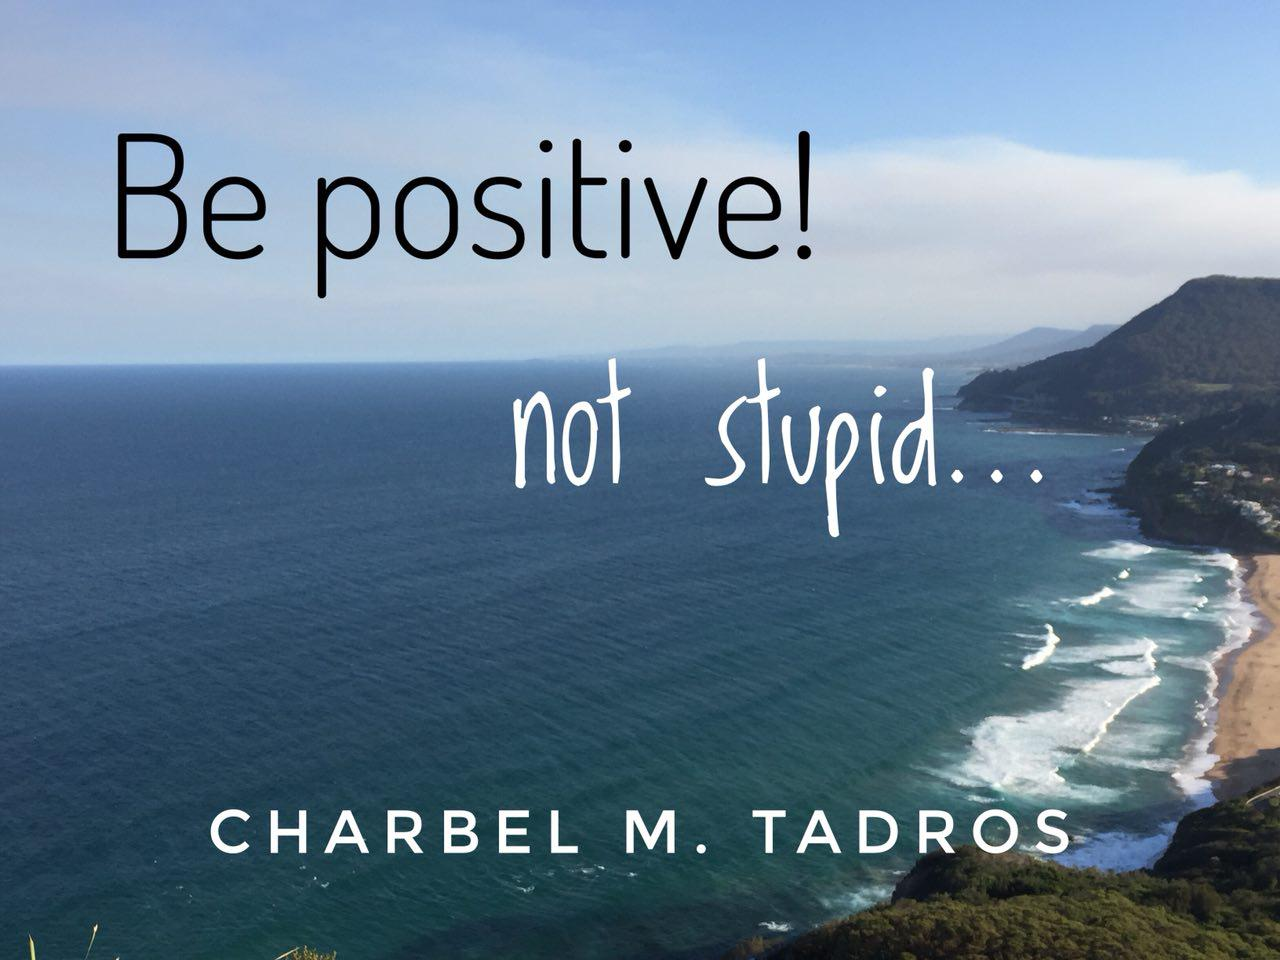 Be Positive, not Stupid!